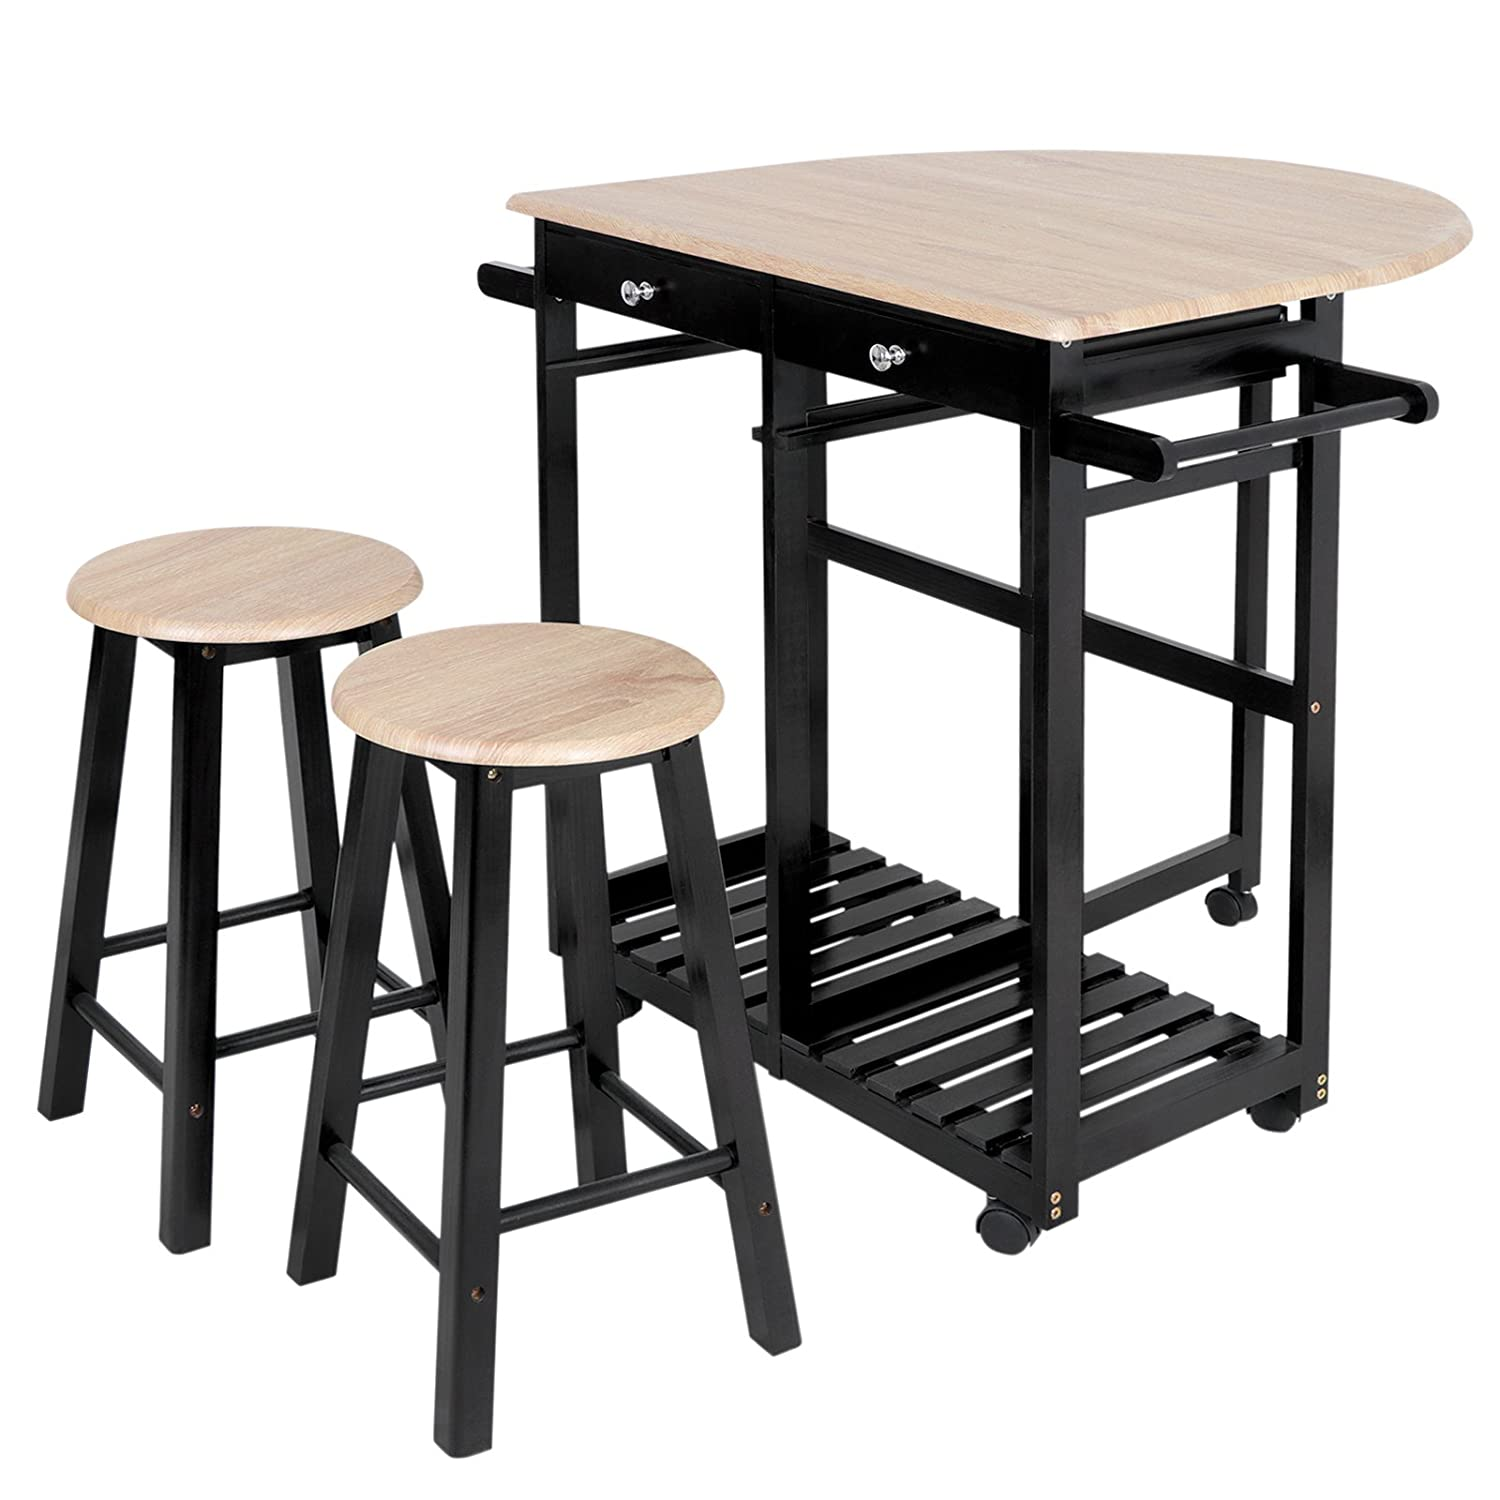 ZenChef 3-Piece Rolling Kitchen Island Trolley Cart Set Breakfast Bar Cart Drop-Leaf Folding Table w/2 Stools and 2 Drawers, Enjoy Indoor & Outdoor Dining at Anytime